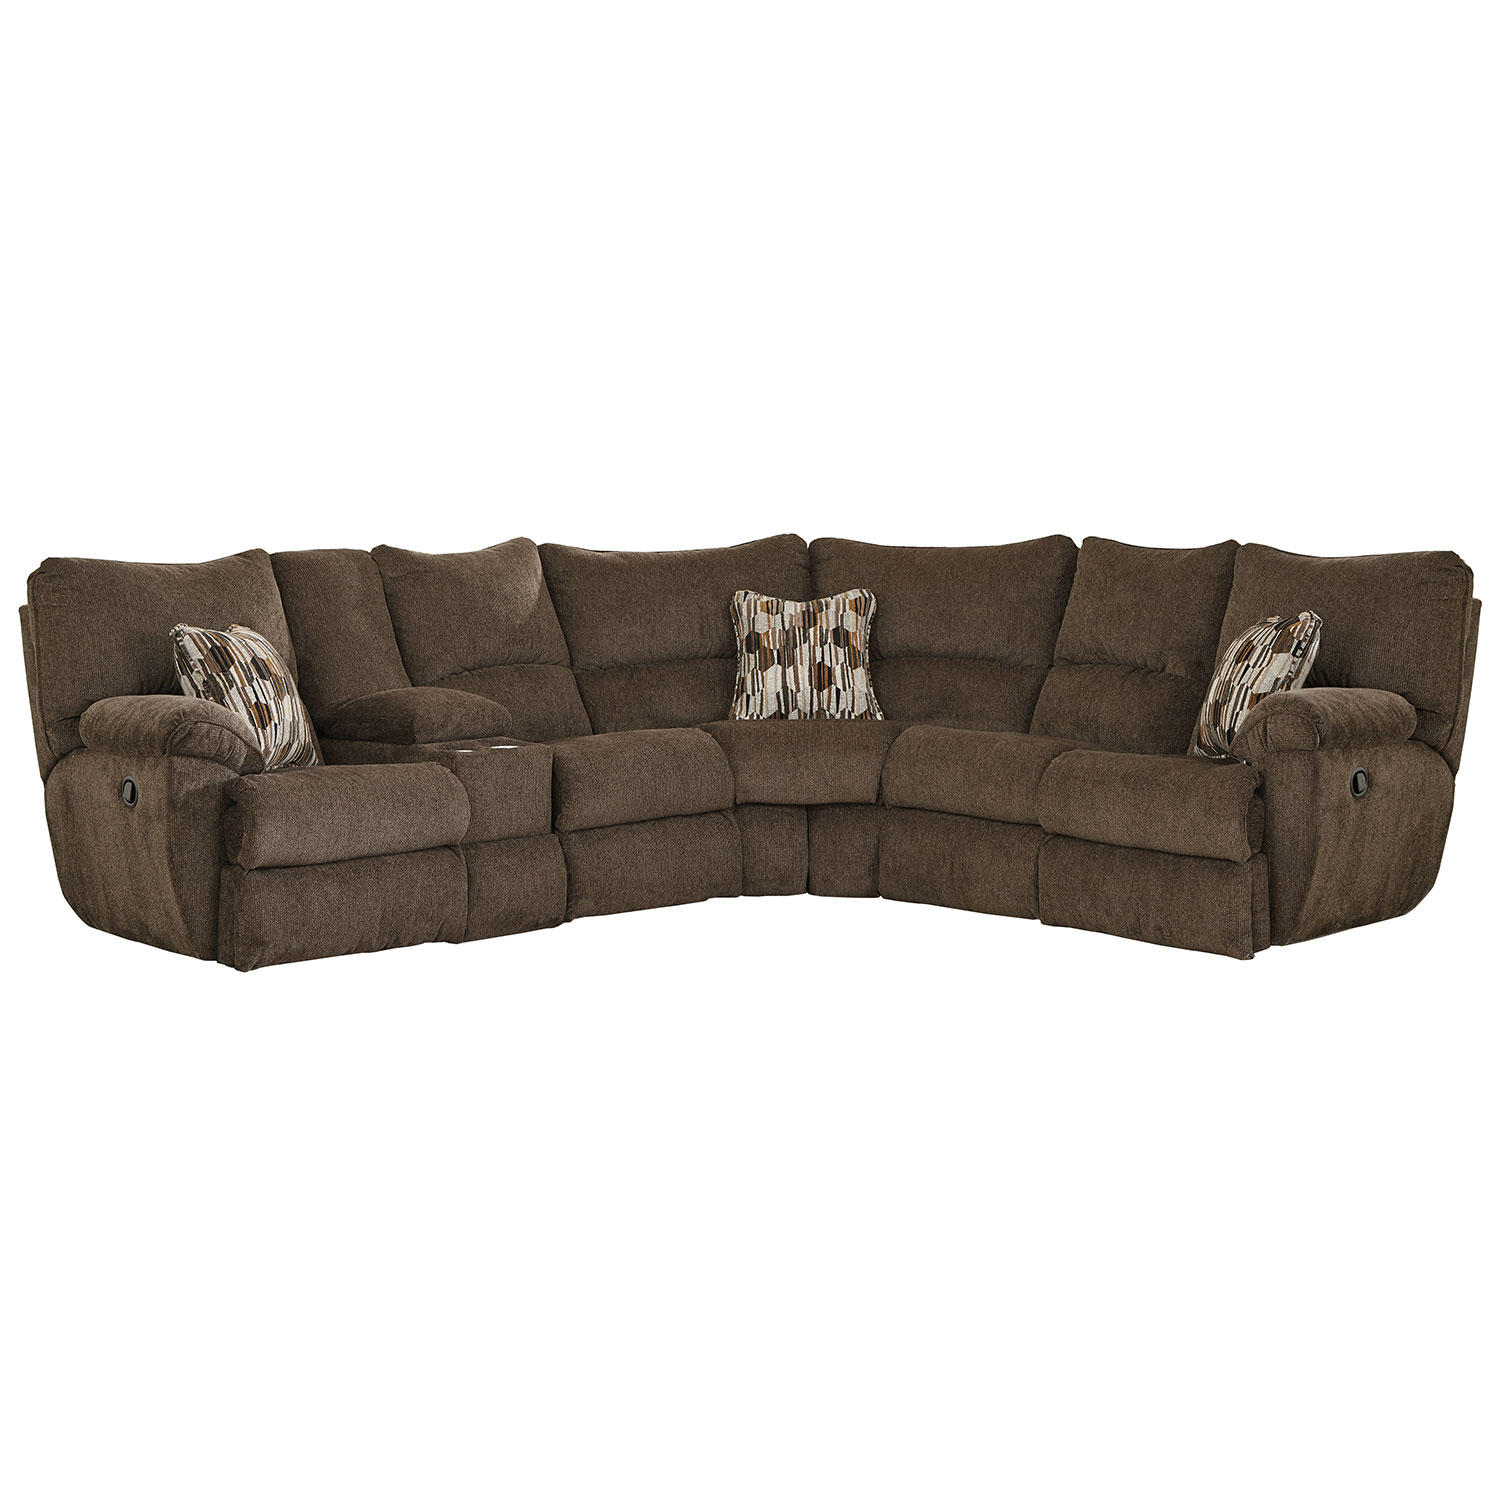 Elliot Sectional with 3 Lay Flat Reclining Sectional Sofa